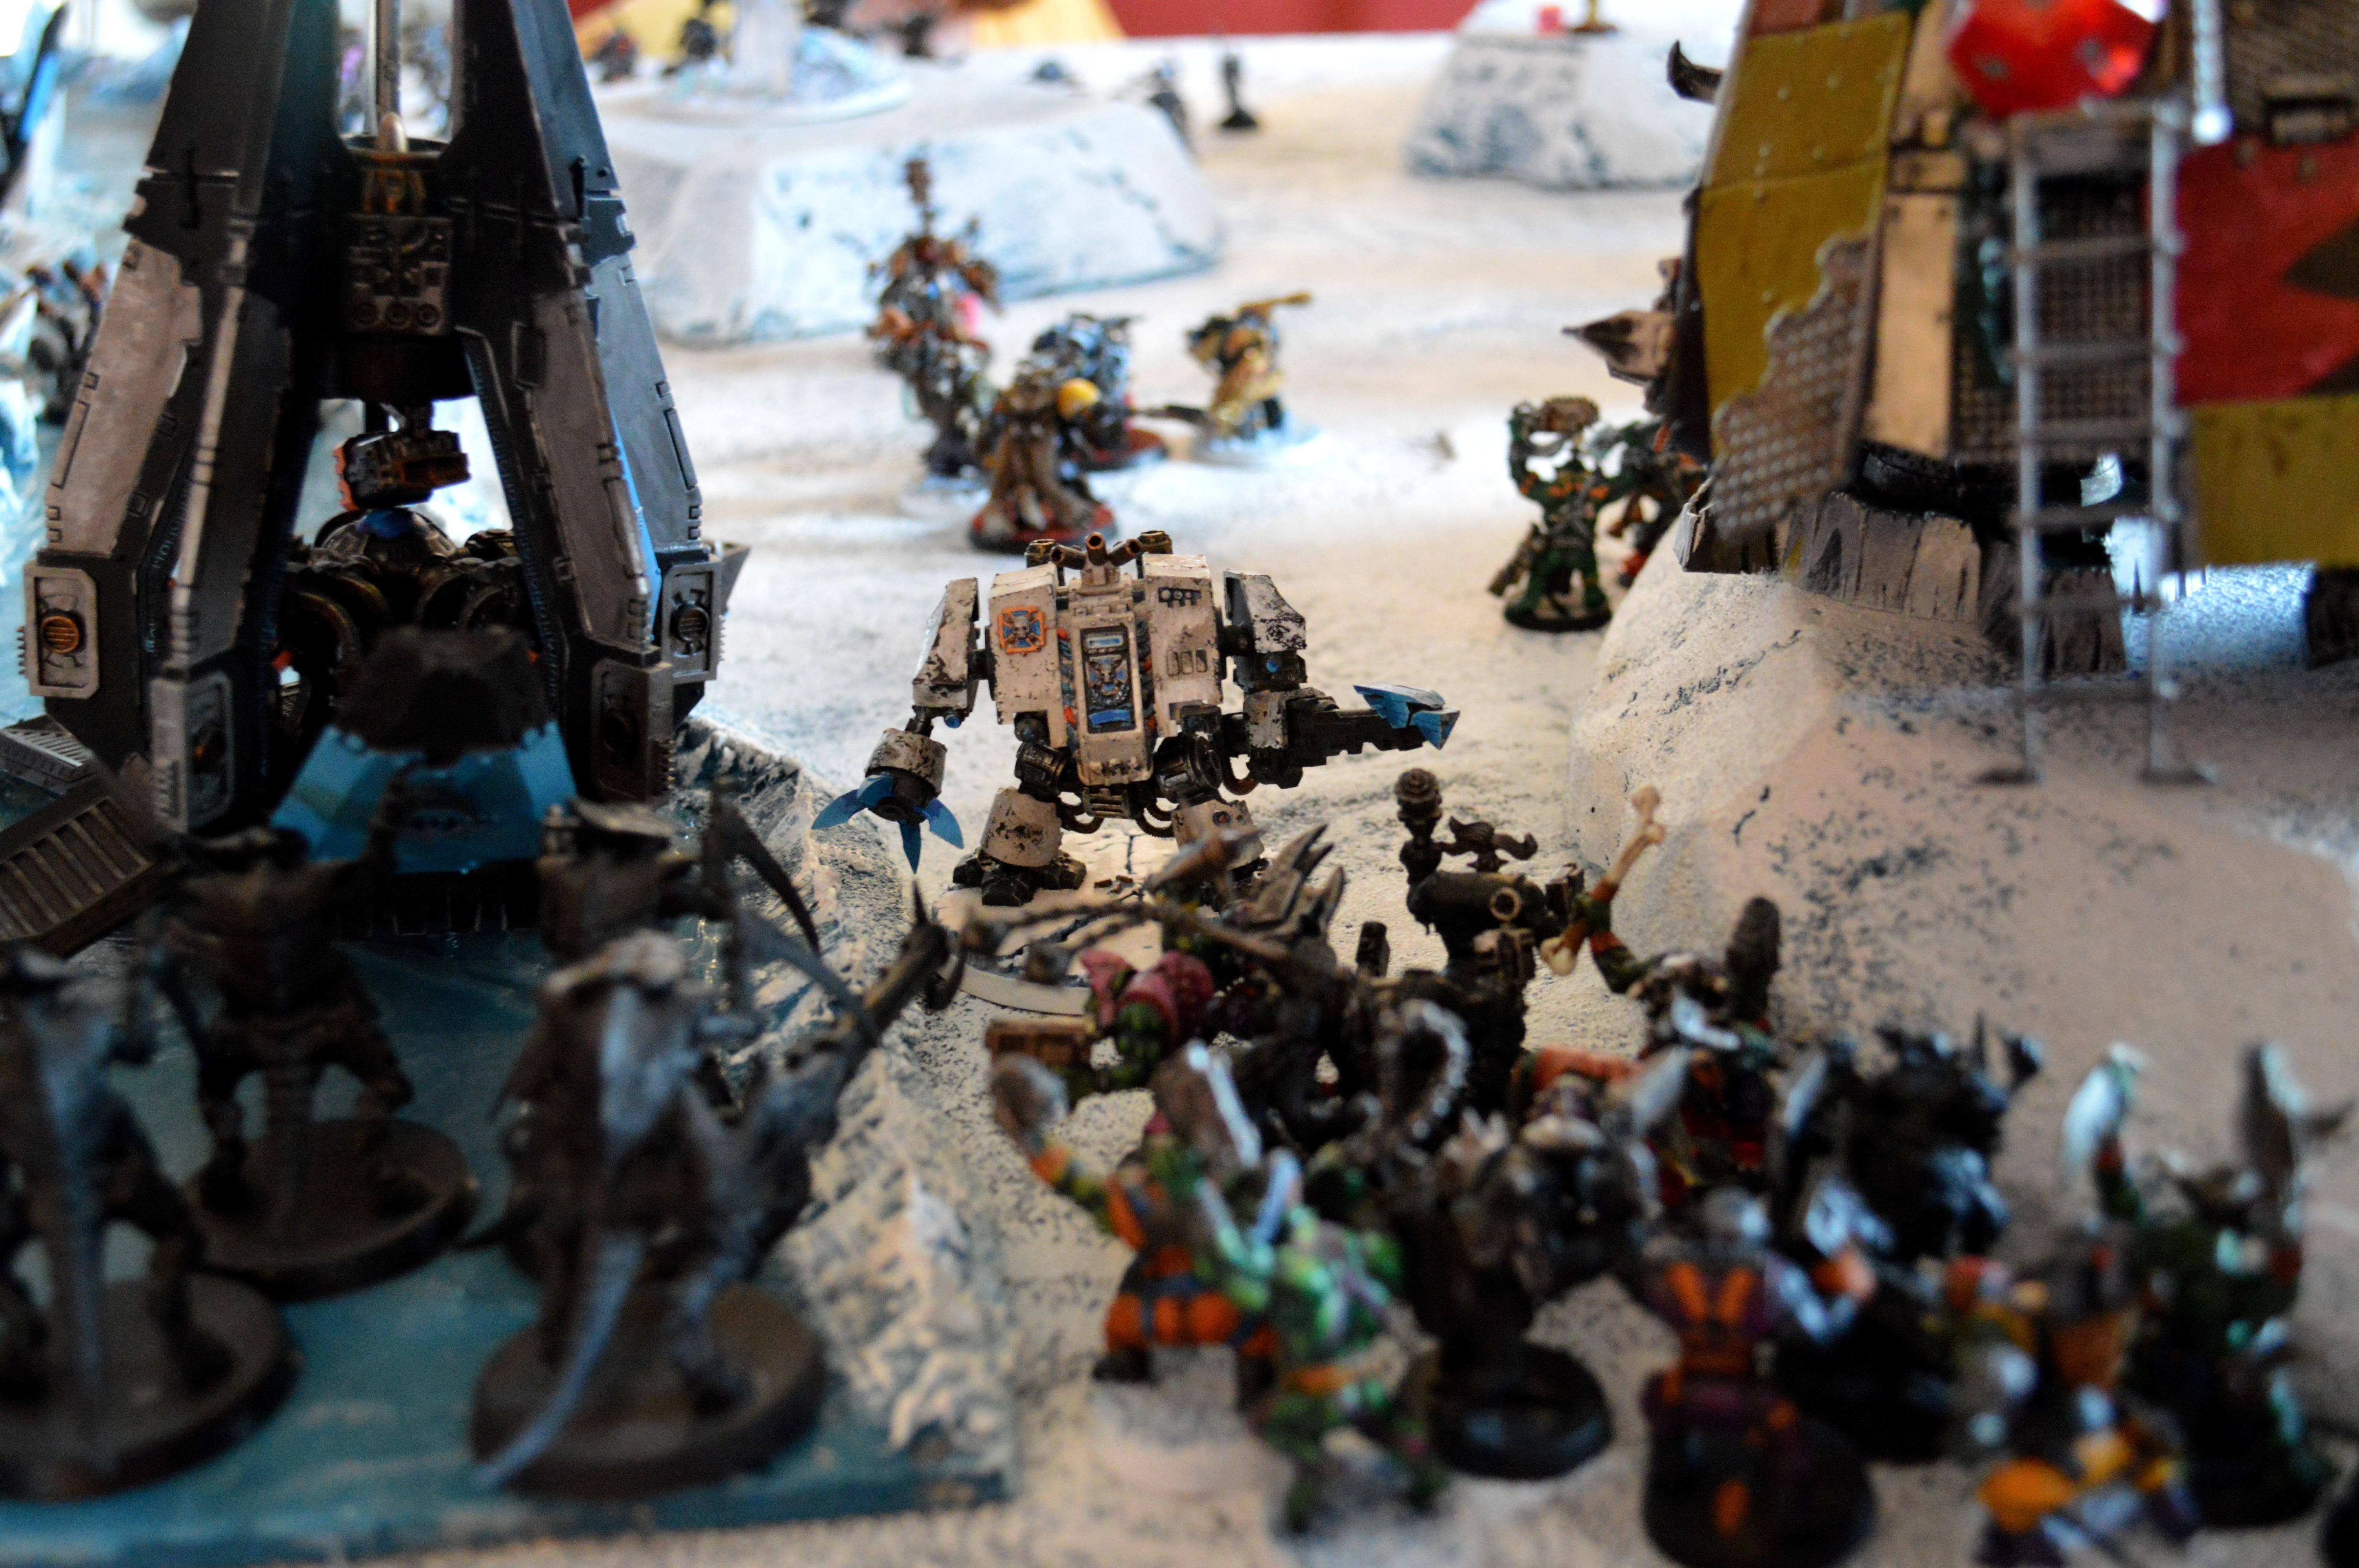 Apocalypse, Ice Angels, Ice Terrain, Orks, Space Marines, Space Wolves, Tyranids, Warhammer 40,000